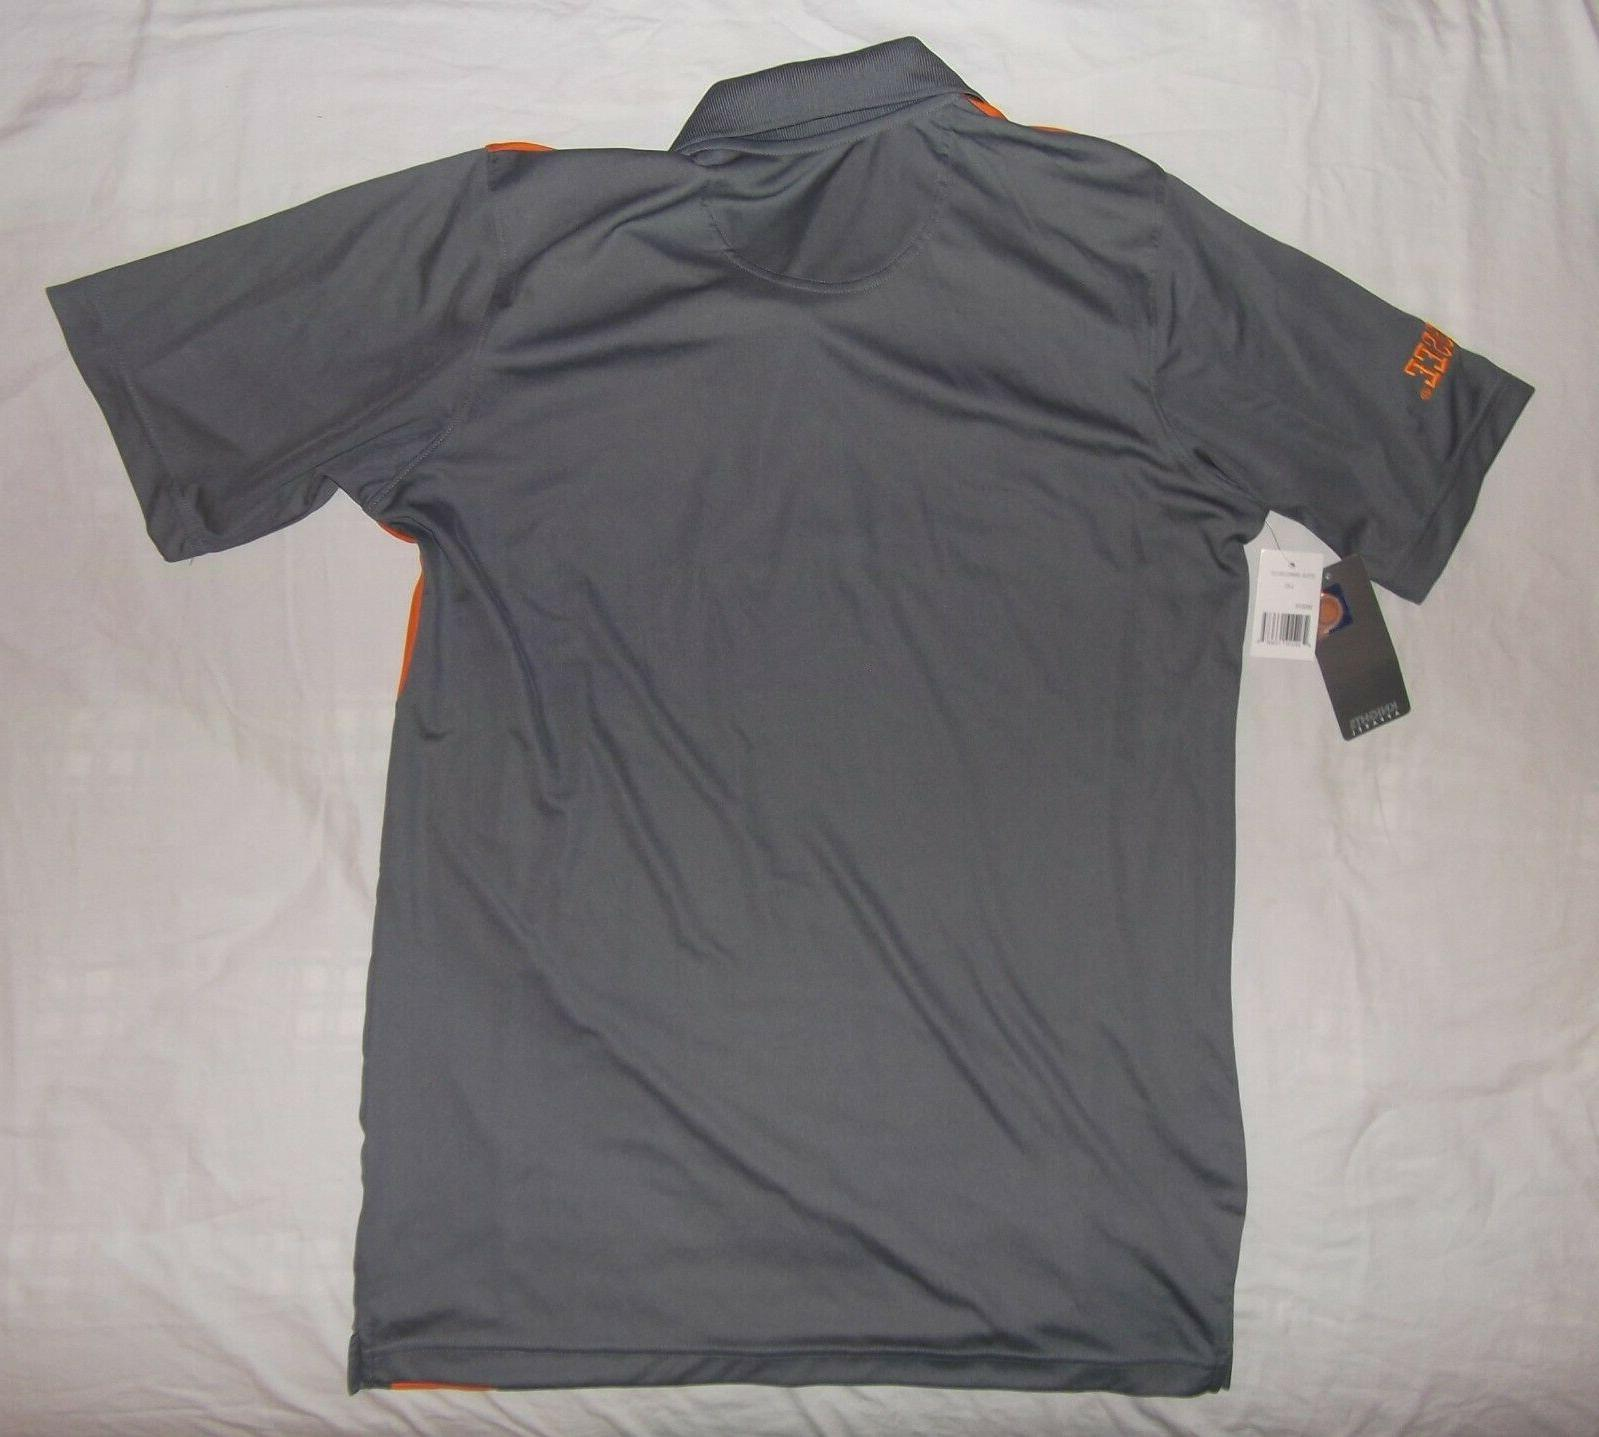 New University Tennessee Knights Apparel UT shirt gray